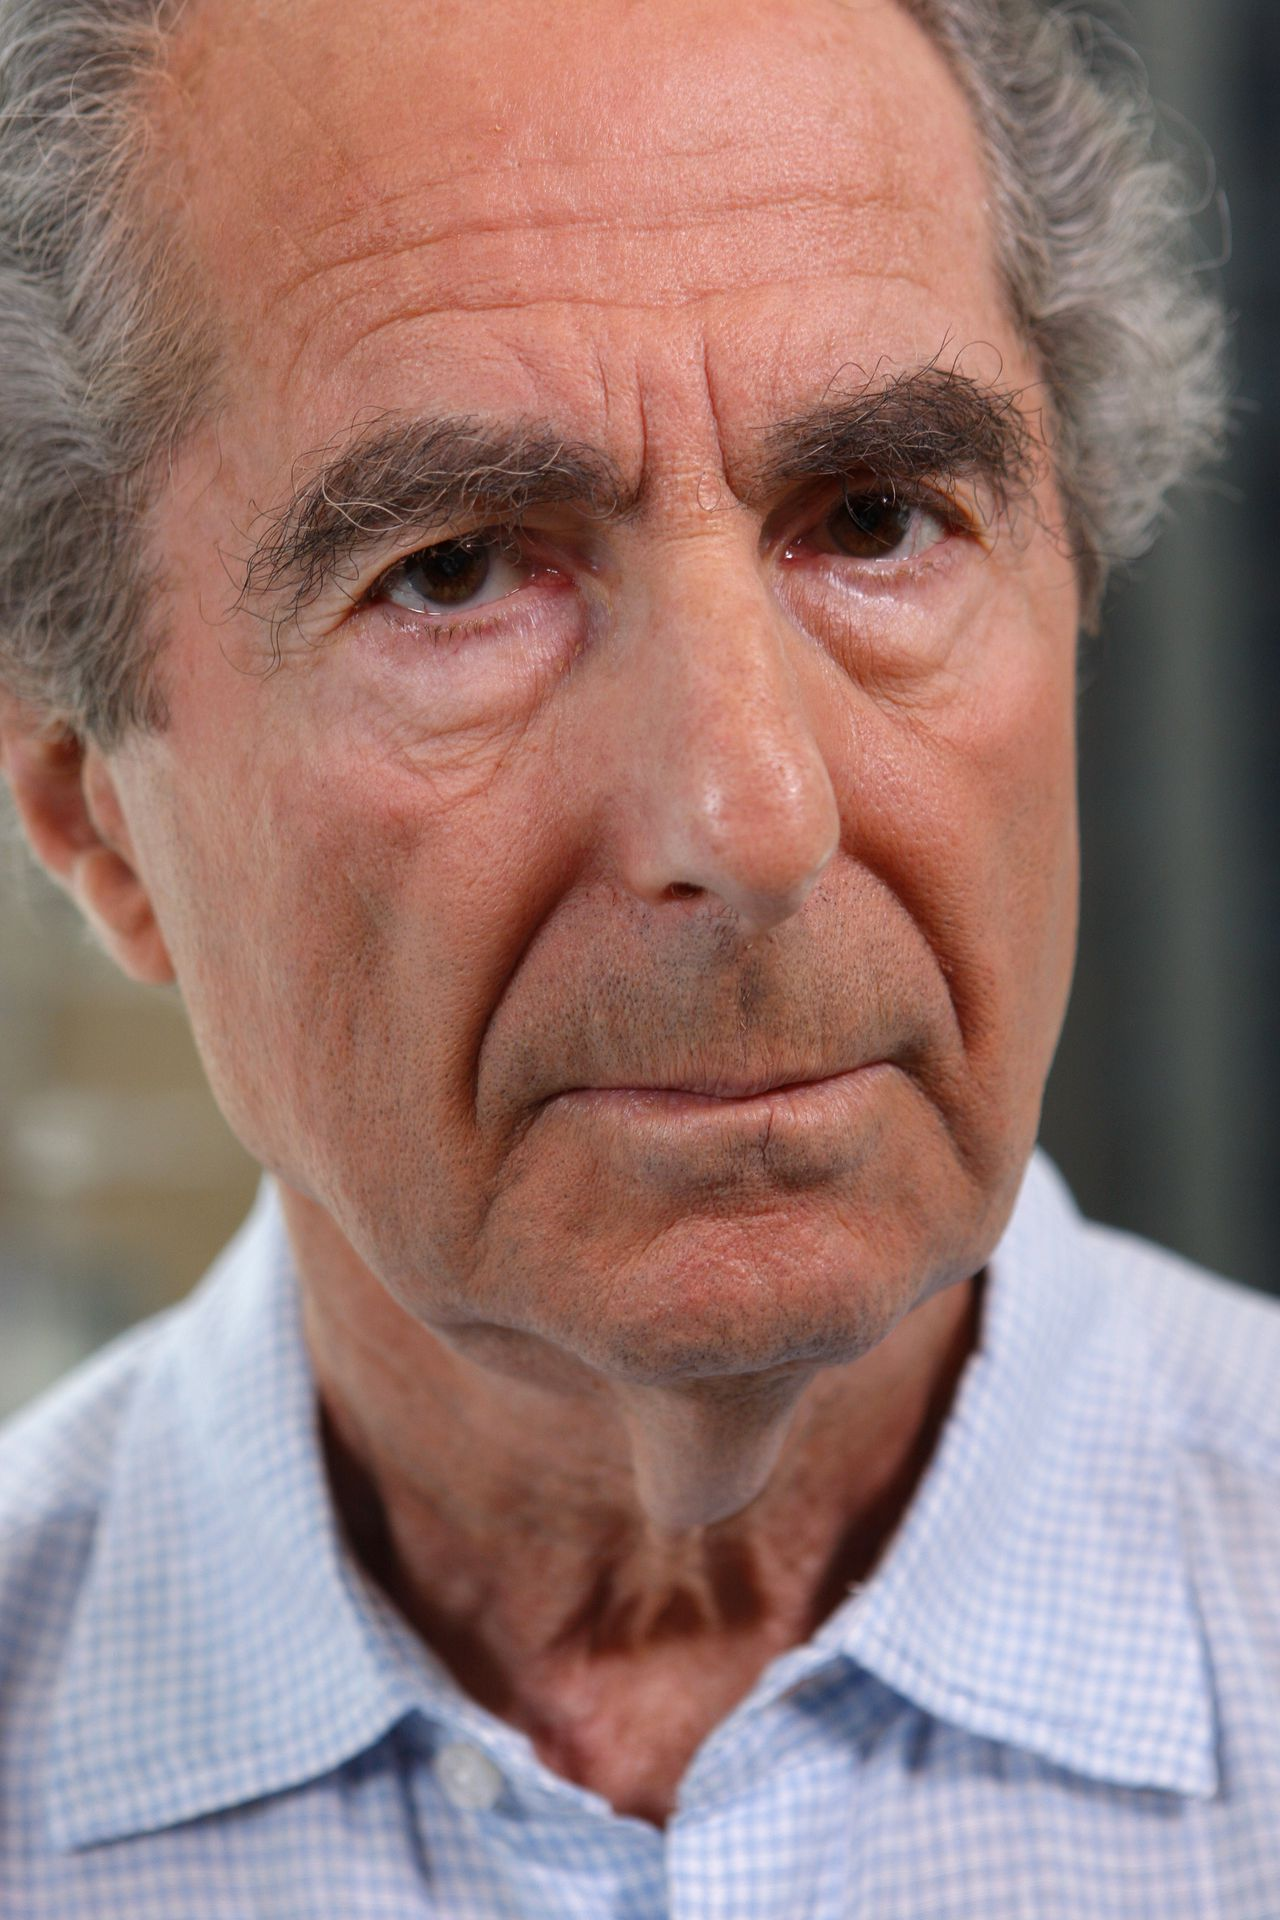 Philip Roth Foto Andrew Harrer Author Philip Roth poses for a portrait in New York, U.S., on Wednesday, Sept. 3, 2008. Turning a Philip Roth book into a movie is like translating ancient Greek into modern English: Something crucial often gets lost in the translation. Ever since ``Goodbye, Columbus'' was made into a pitch-perfect 1969 movie starring Richard Benjamin and Ali McGraw, filmmakers have struggled to make sense of Roth's works. Photographer: Andrew Harrer/Bloomberg News